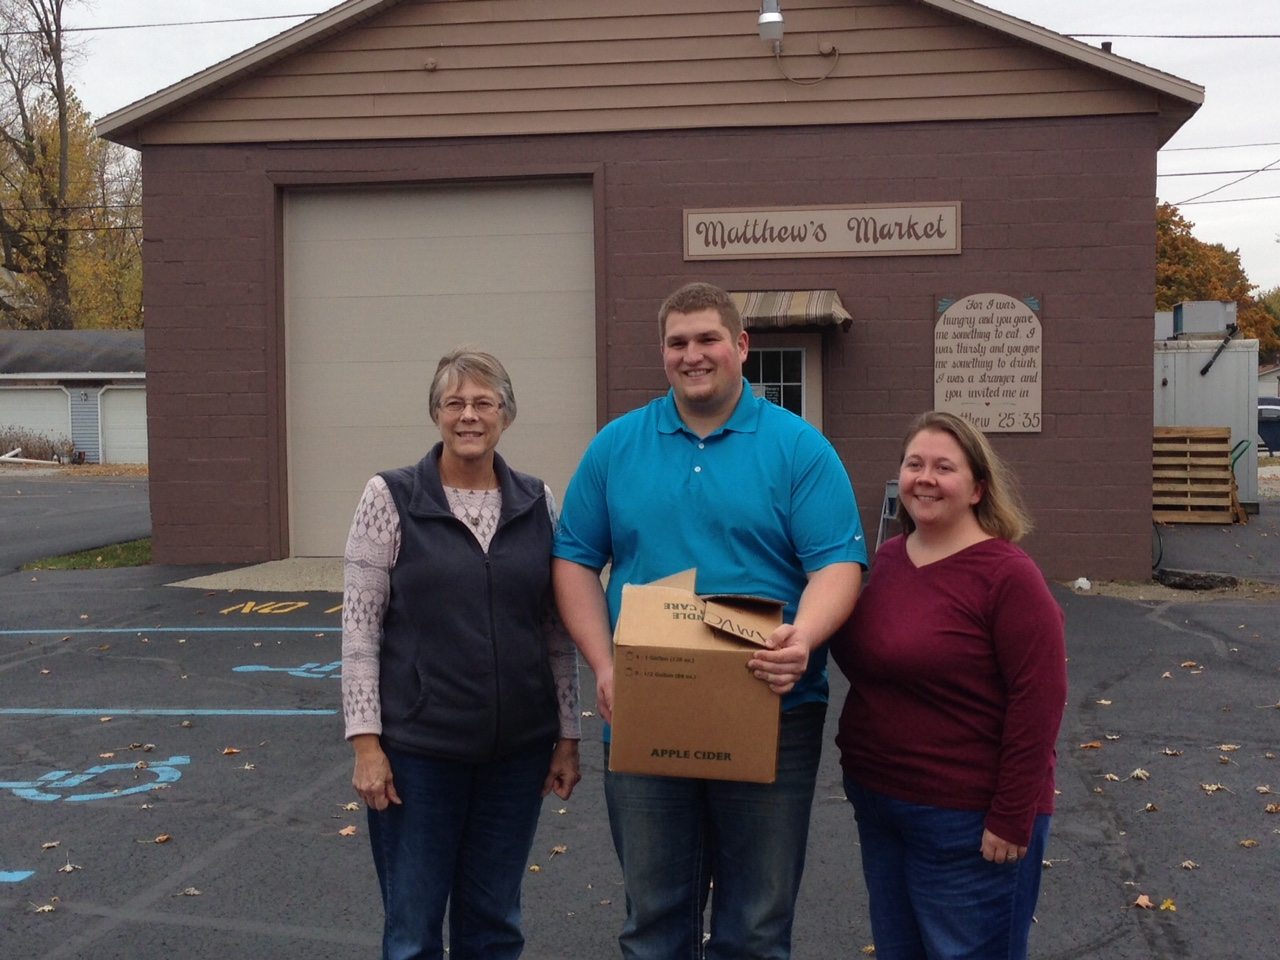 Matthew's Market Receives Pork Donation from AMVC